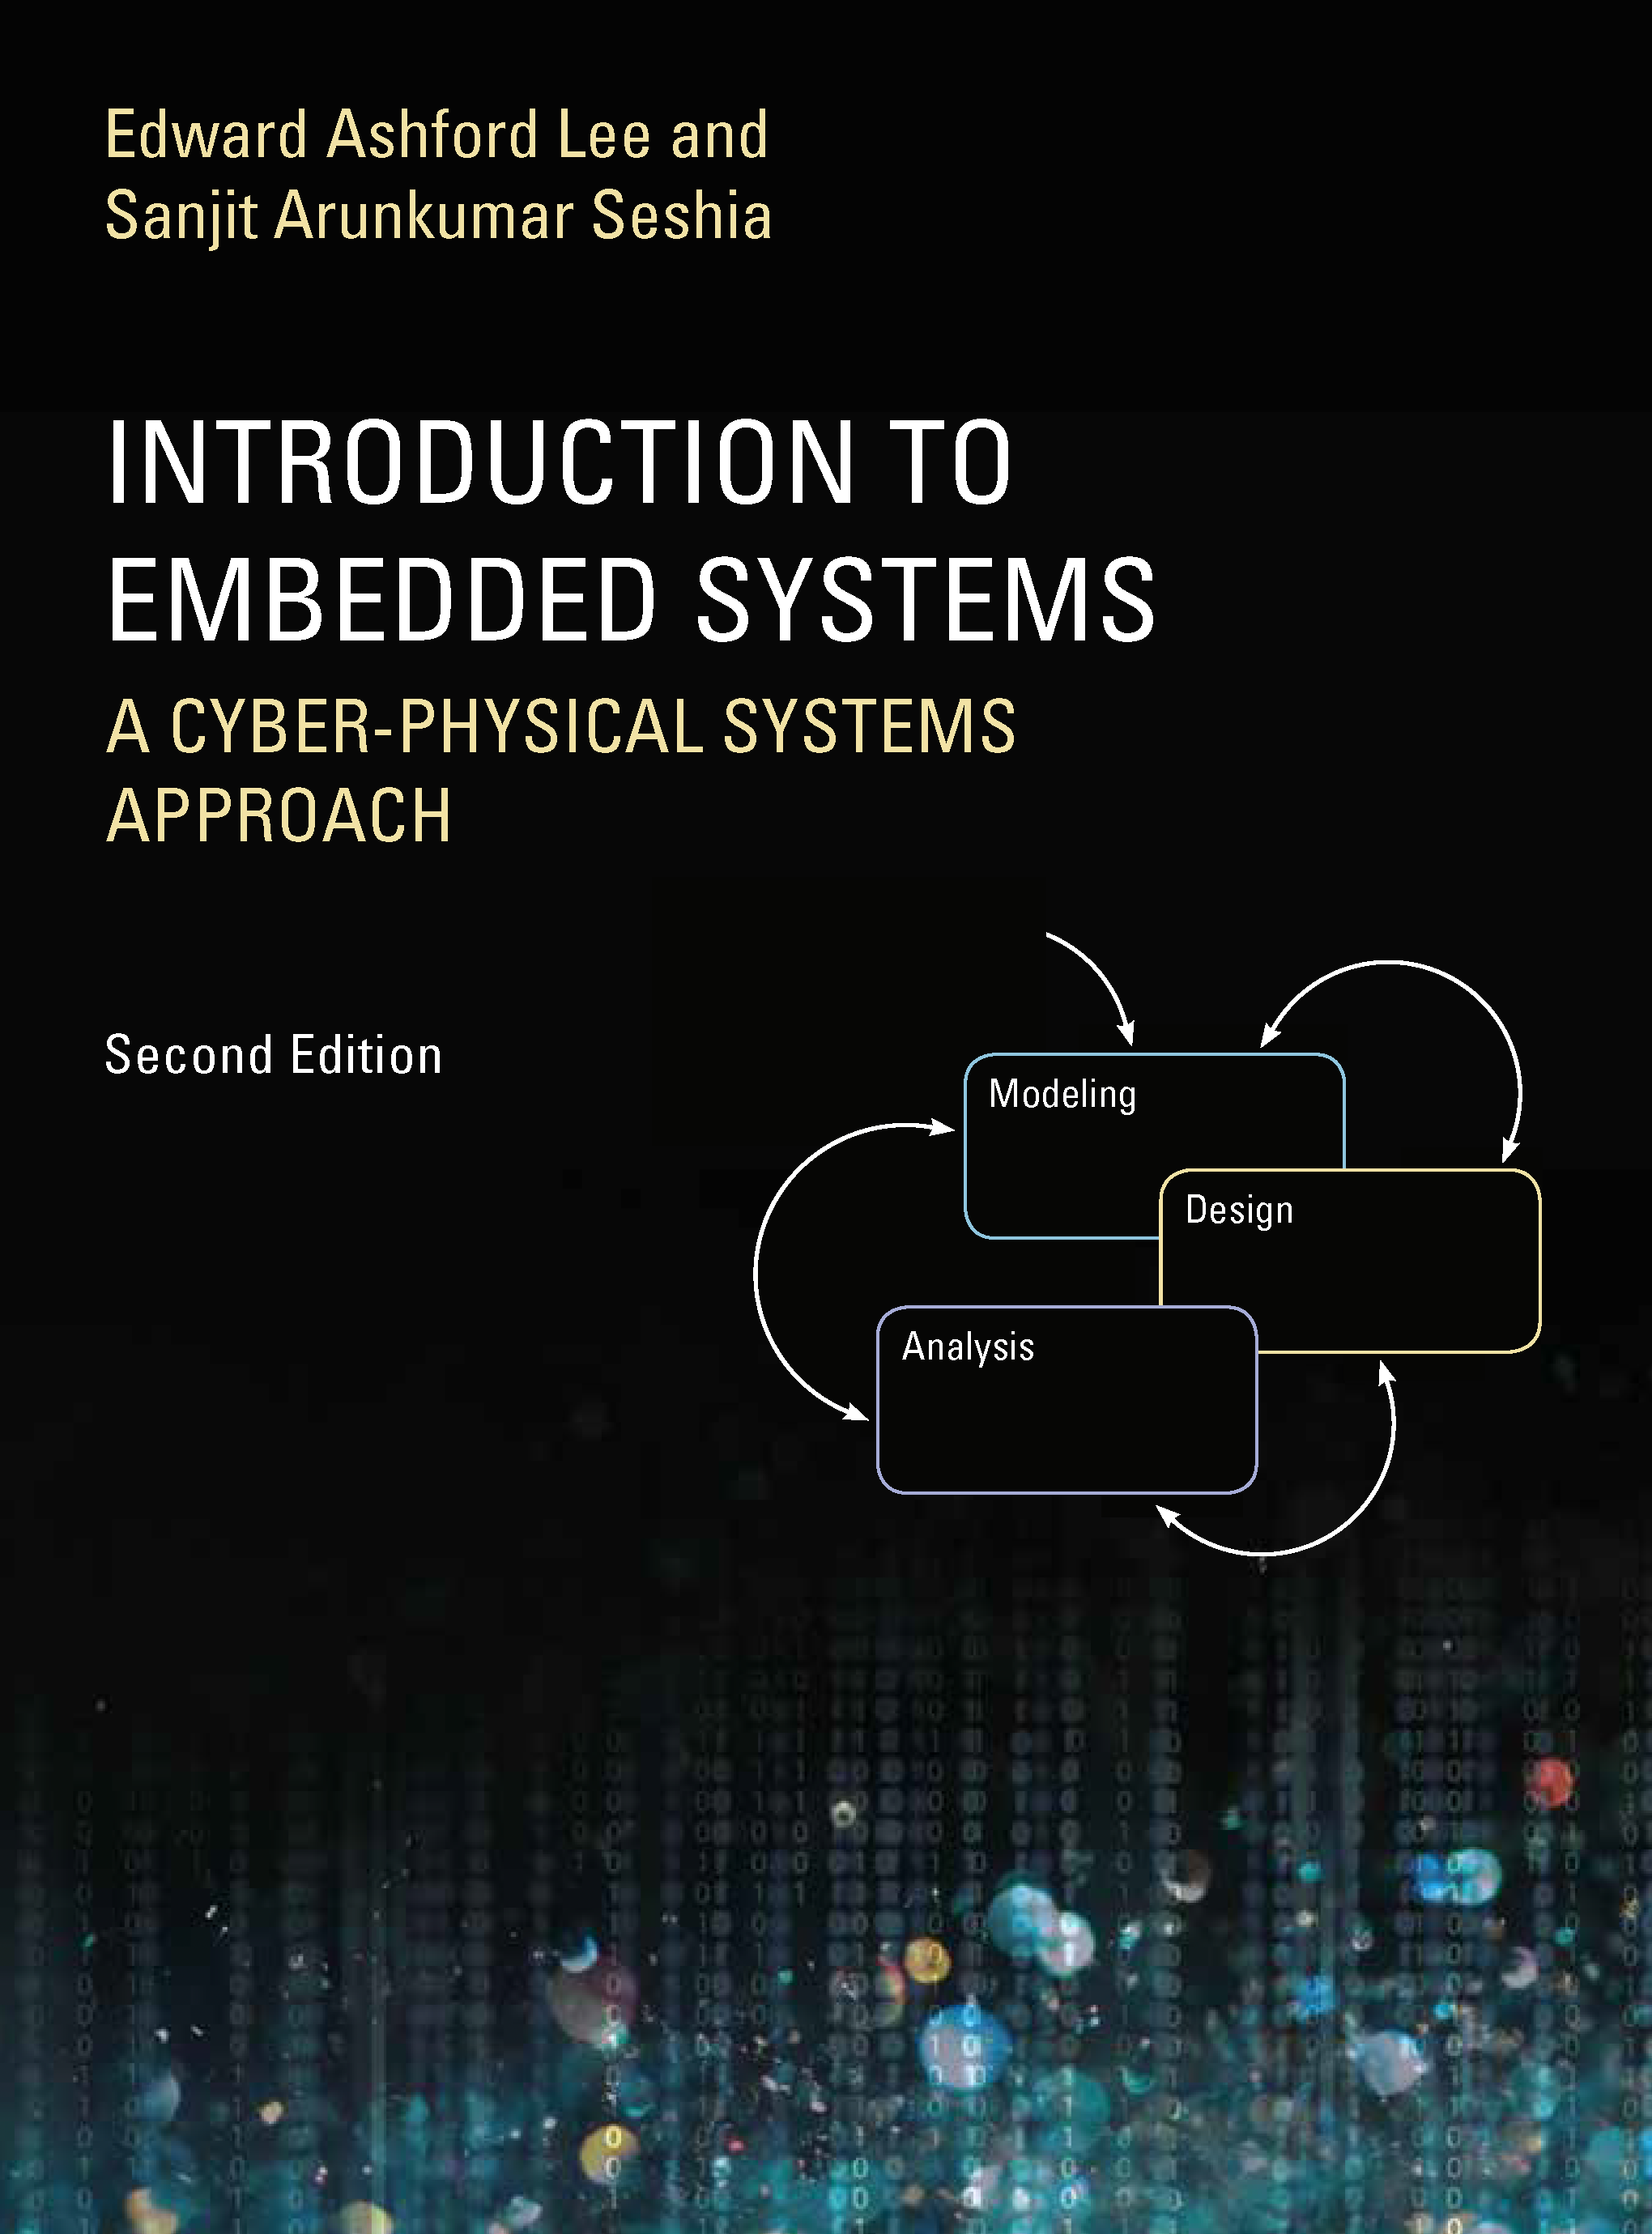 Lee and Seshia, Introduction to Embedded Systems